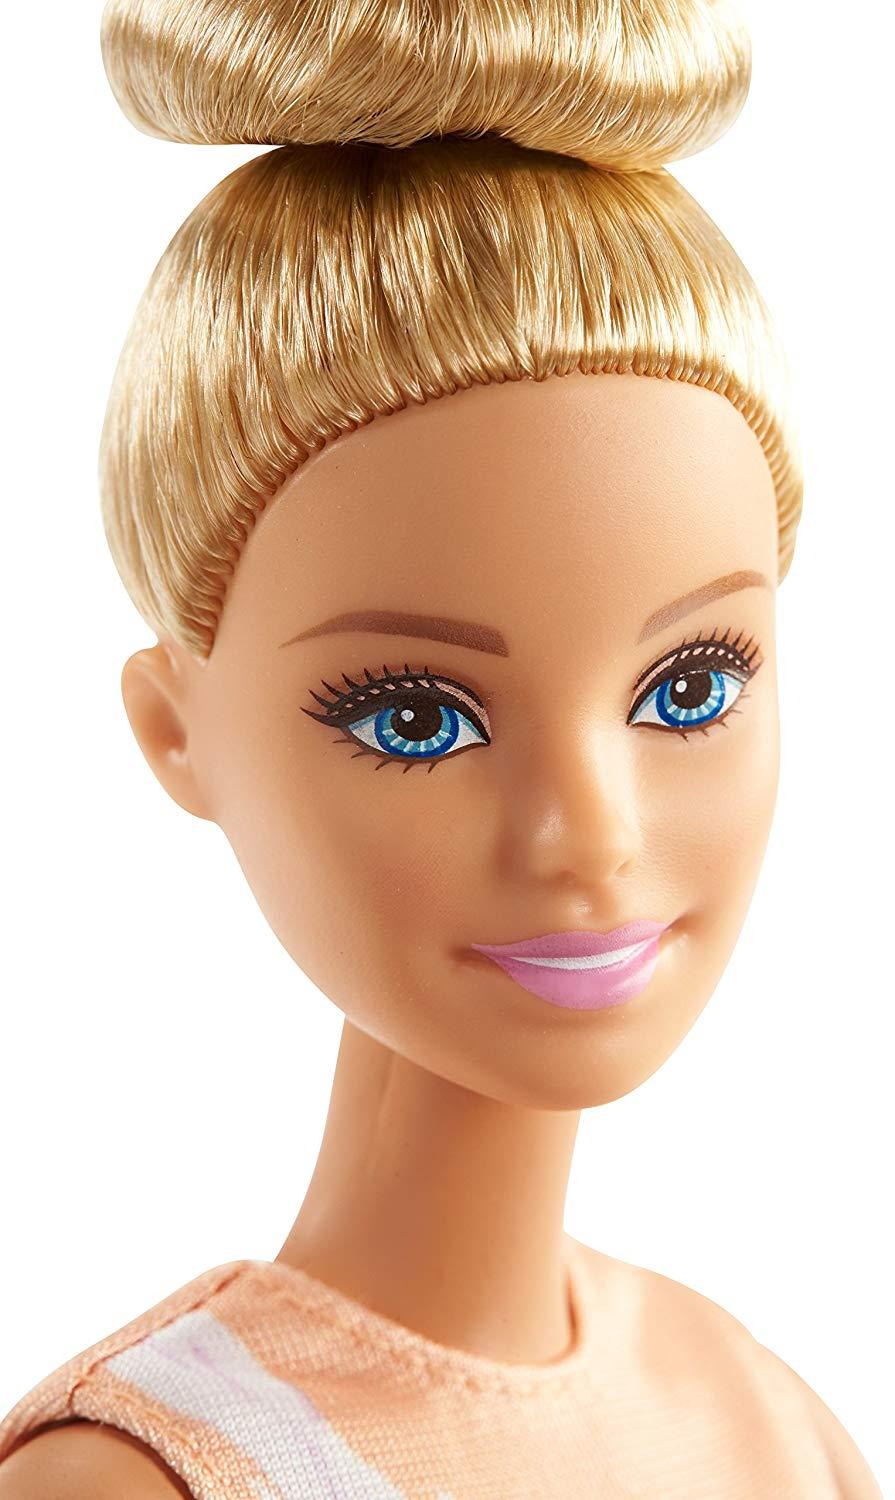 Barbie-Made-to-Move-Collectable-Careers-Fashion-Dolls thumbnail 20